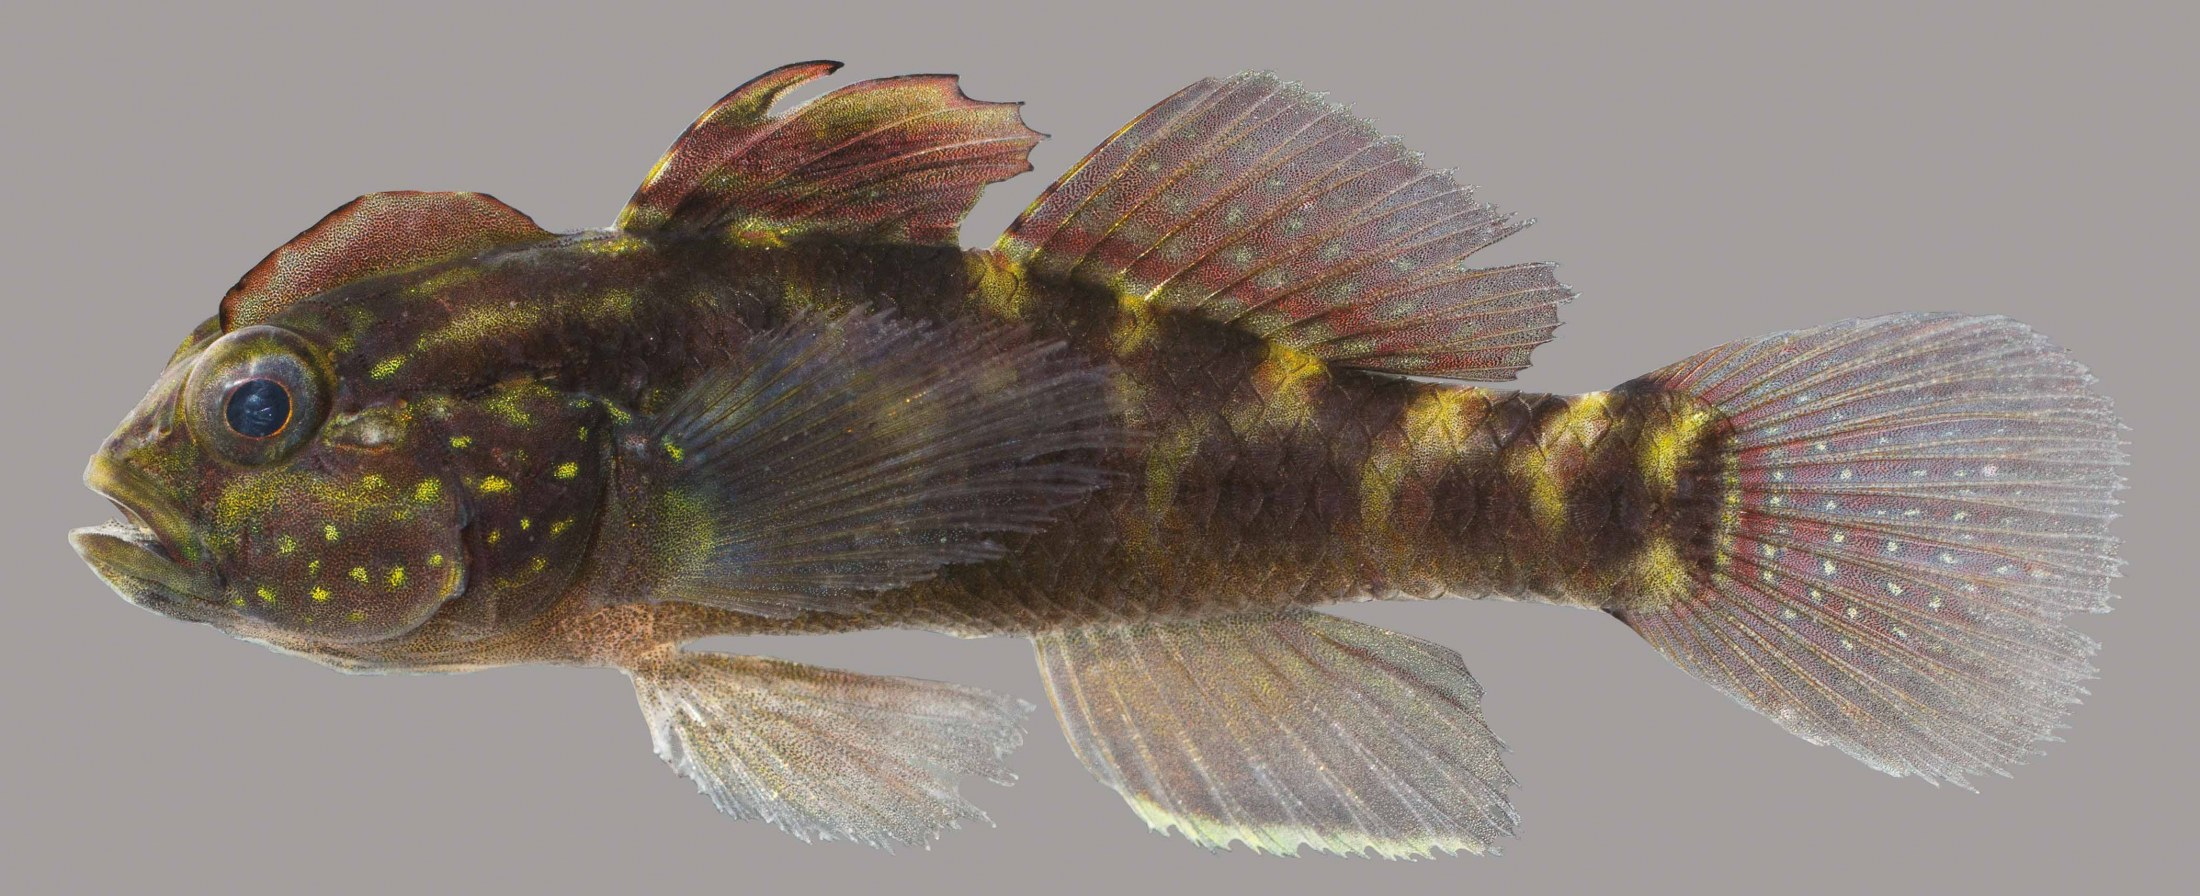 Lateral view of a crested goby